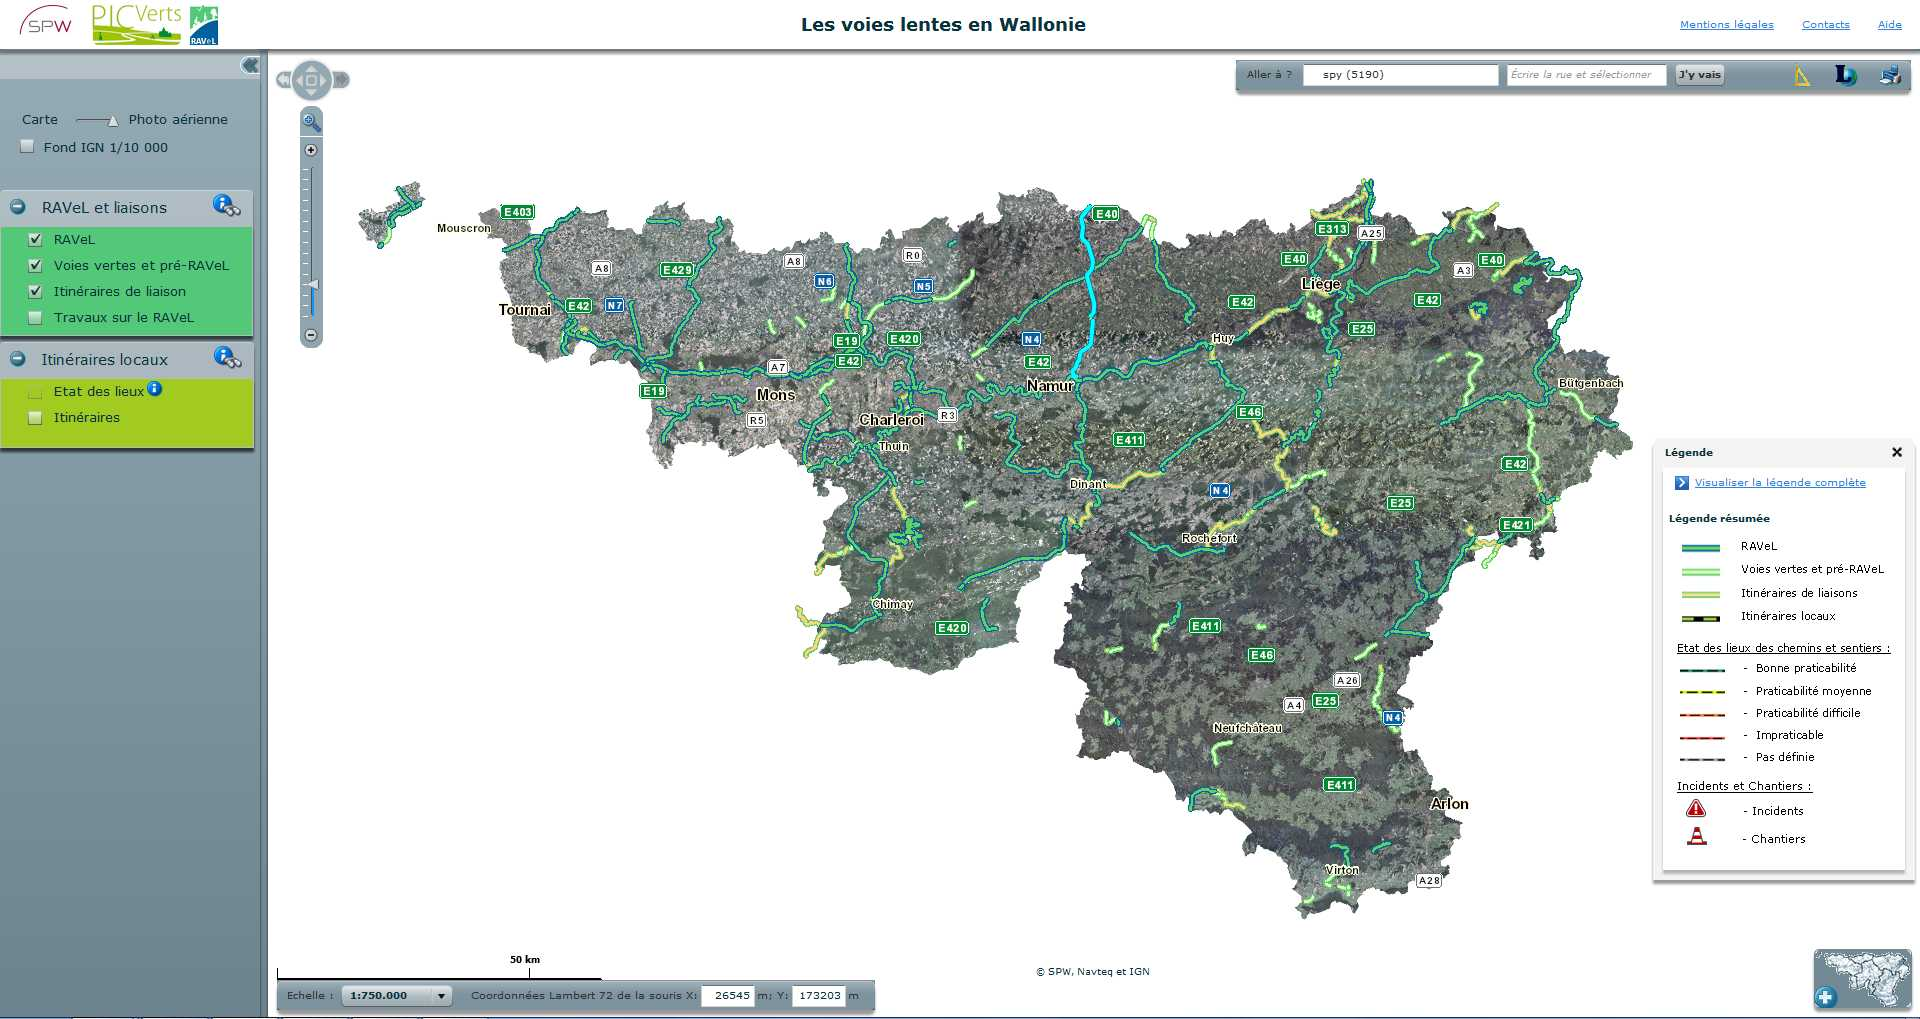 Carte interactive des voies lentes de Wallonie. 2014-121